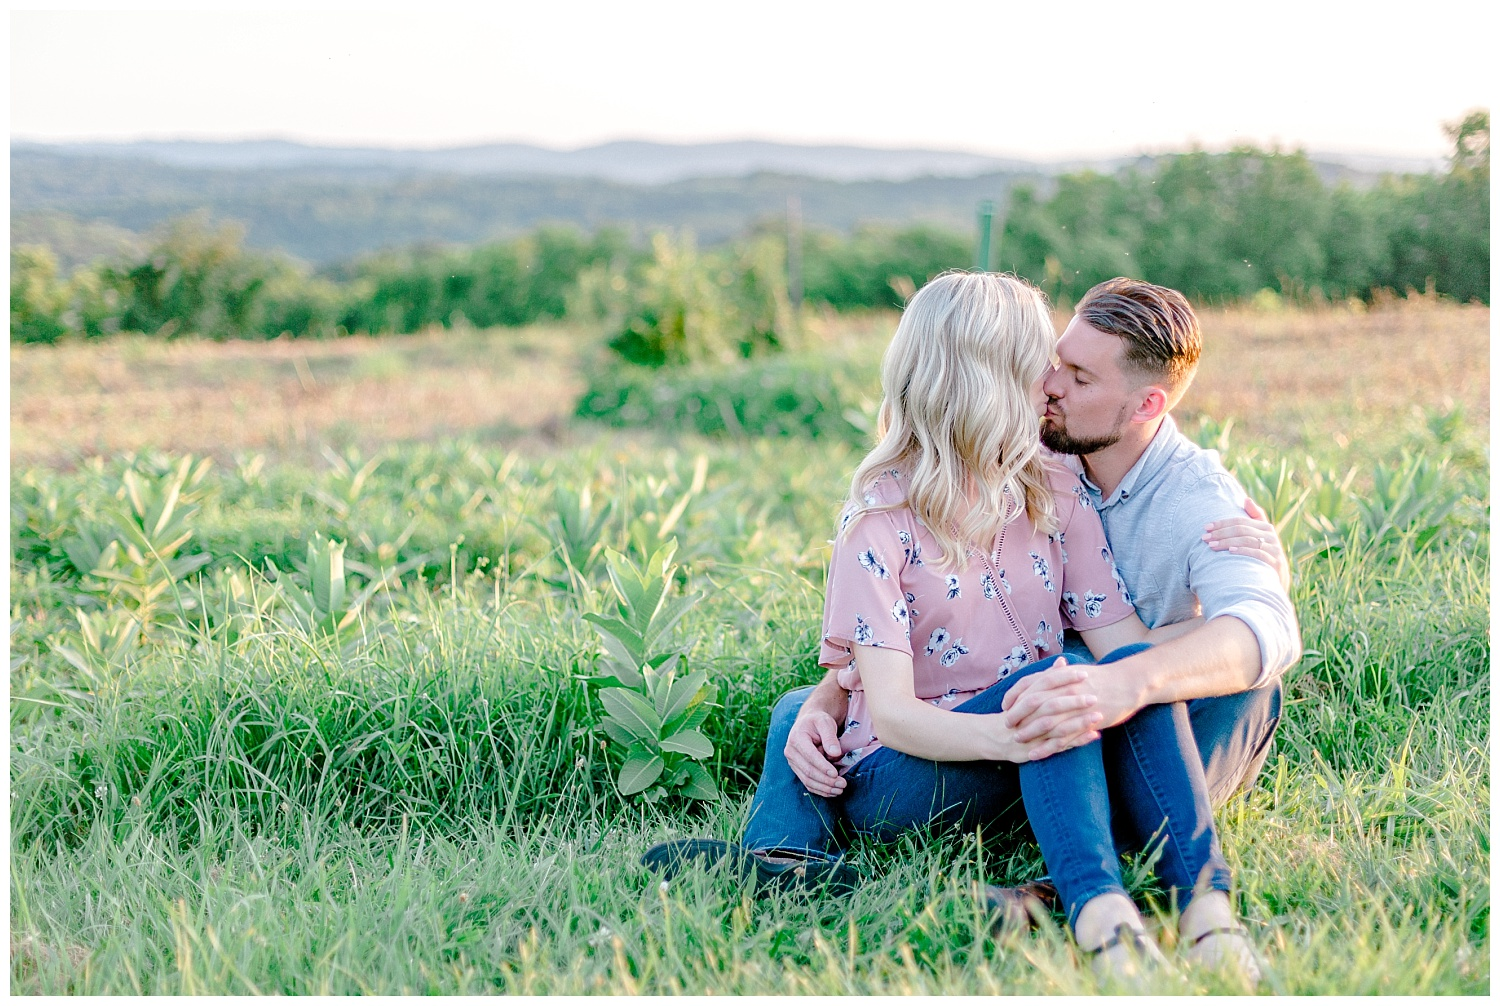 Blue Marsh Lake Reading Pennsylvania flower field golden hour engagement session by PA based wedding and lifestyle photographer Lytle photography_0022.jpg